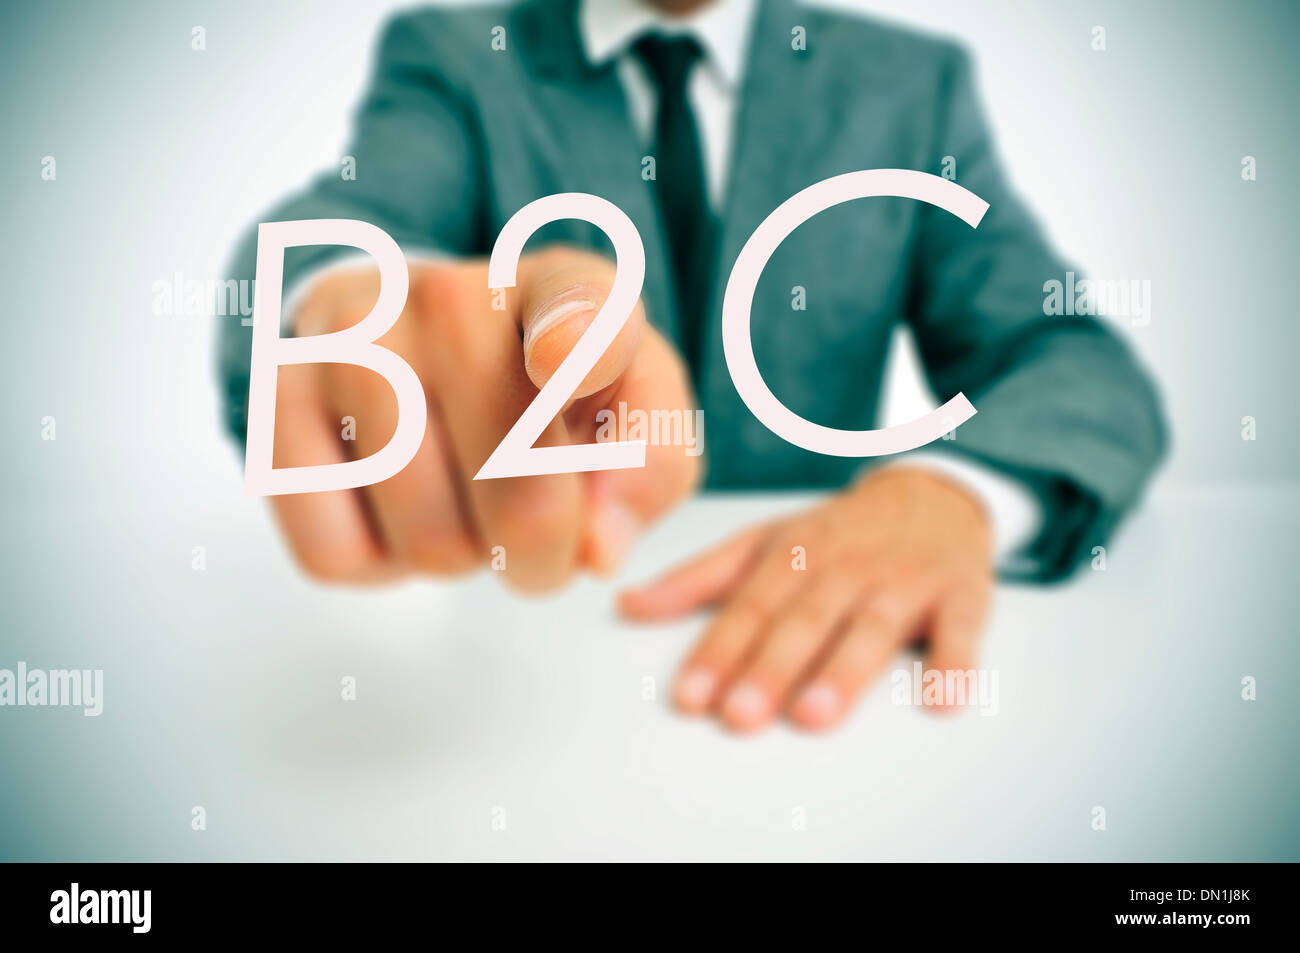 man wearing a suit sitting in a table pointing to the word B2C, business-to-consumer, written in the foreground - Stock Image